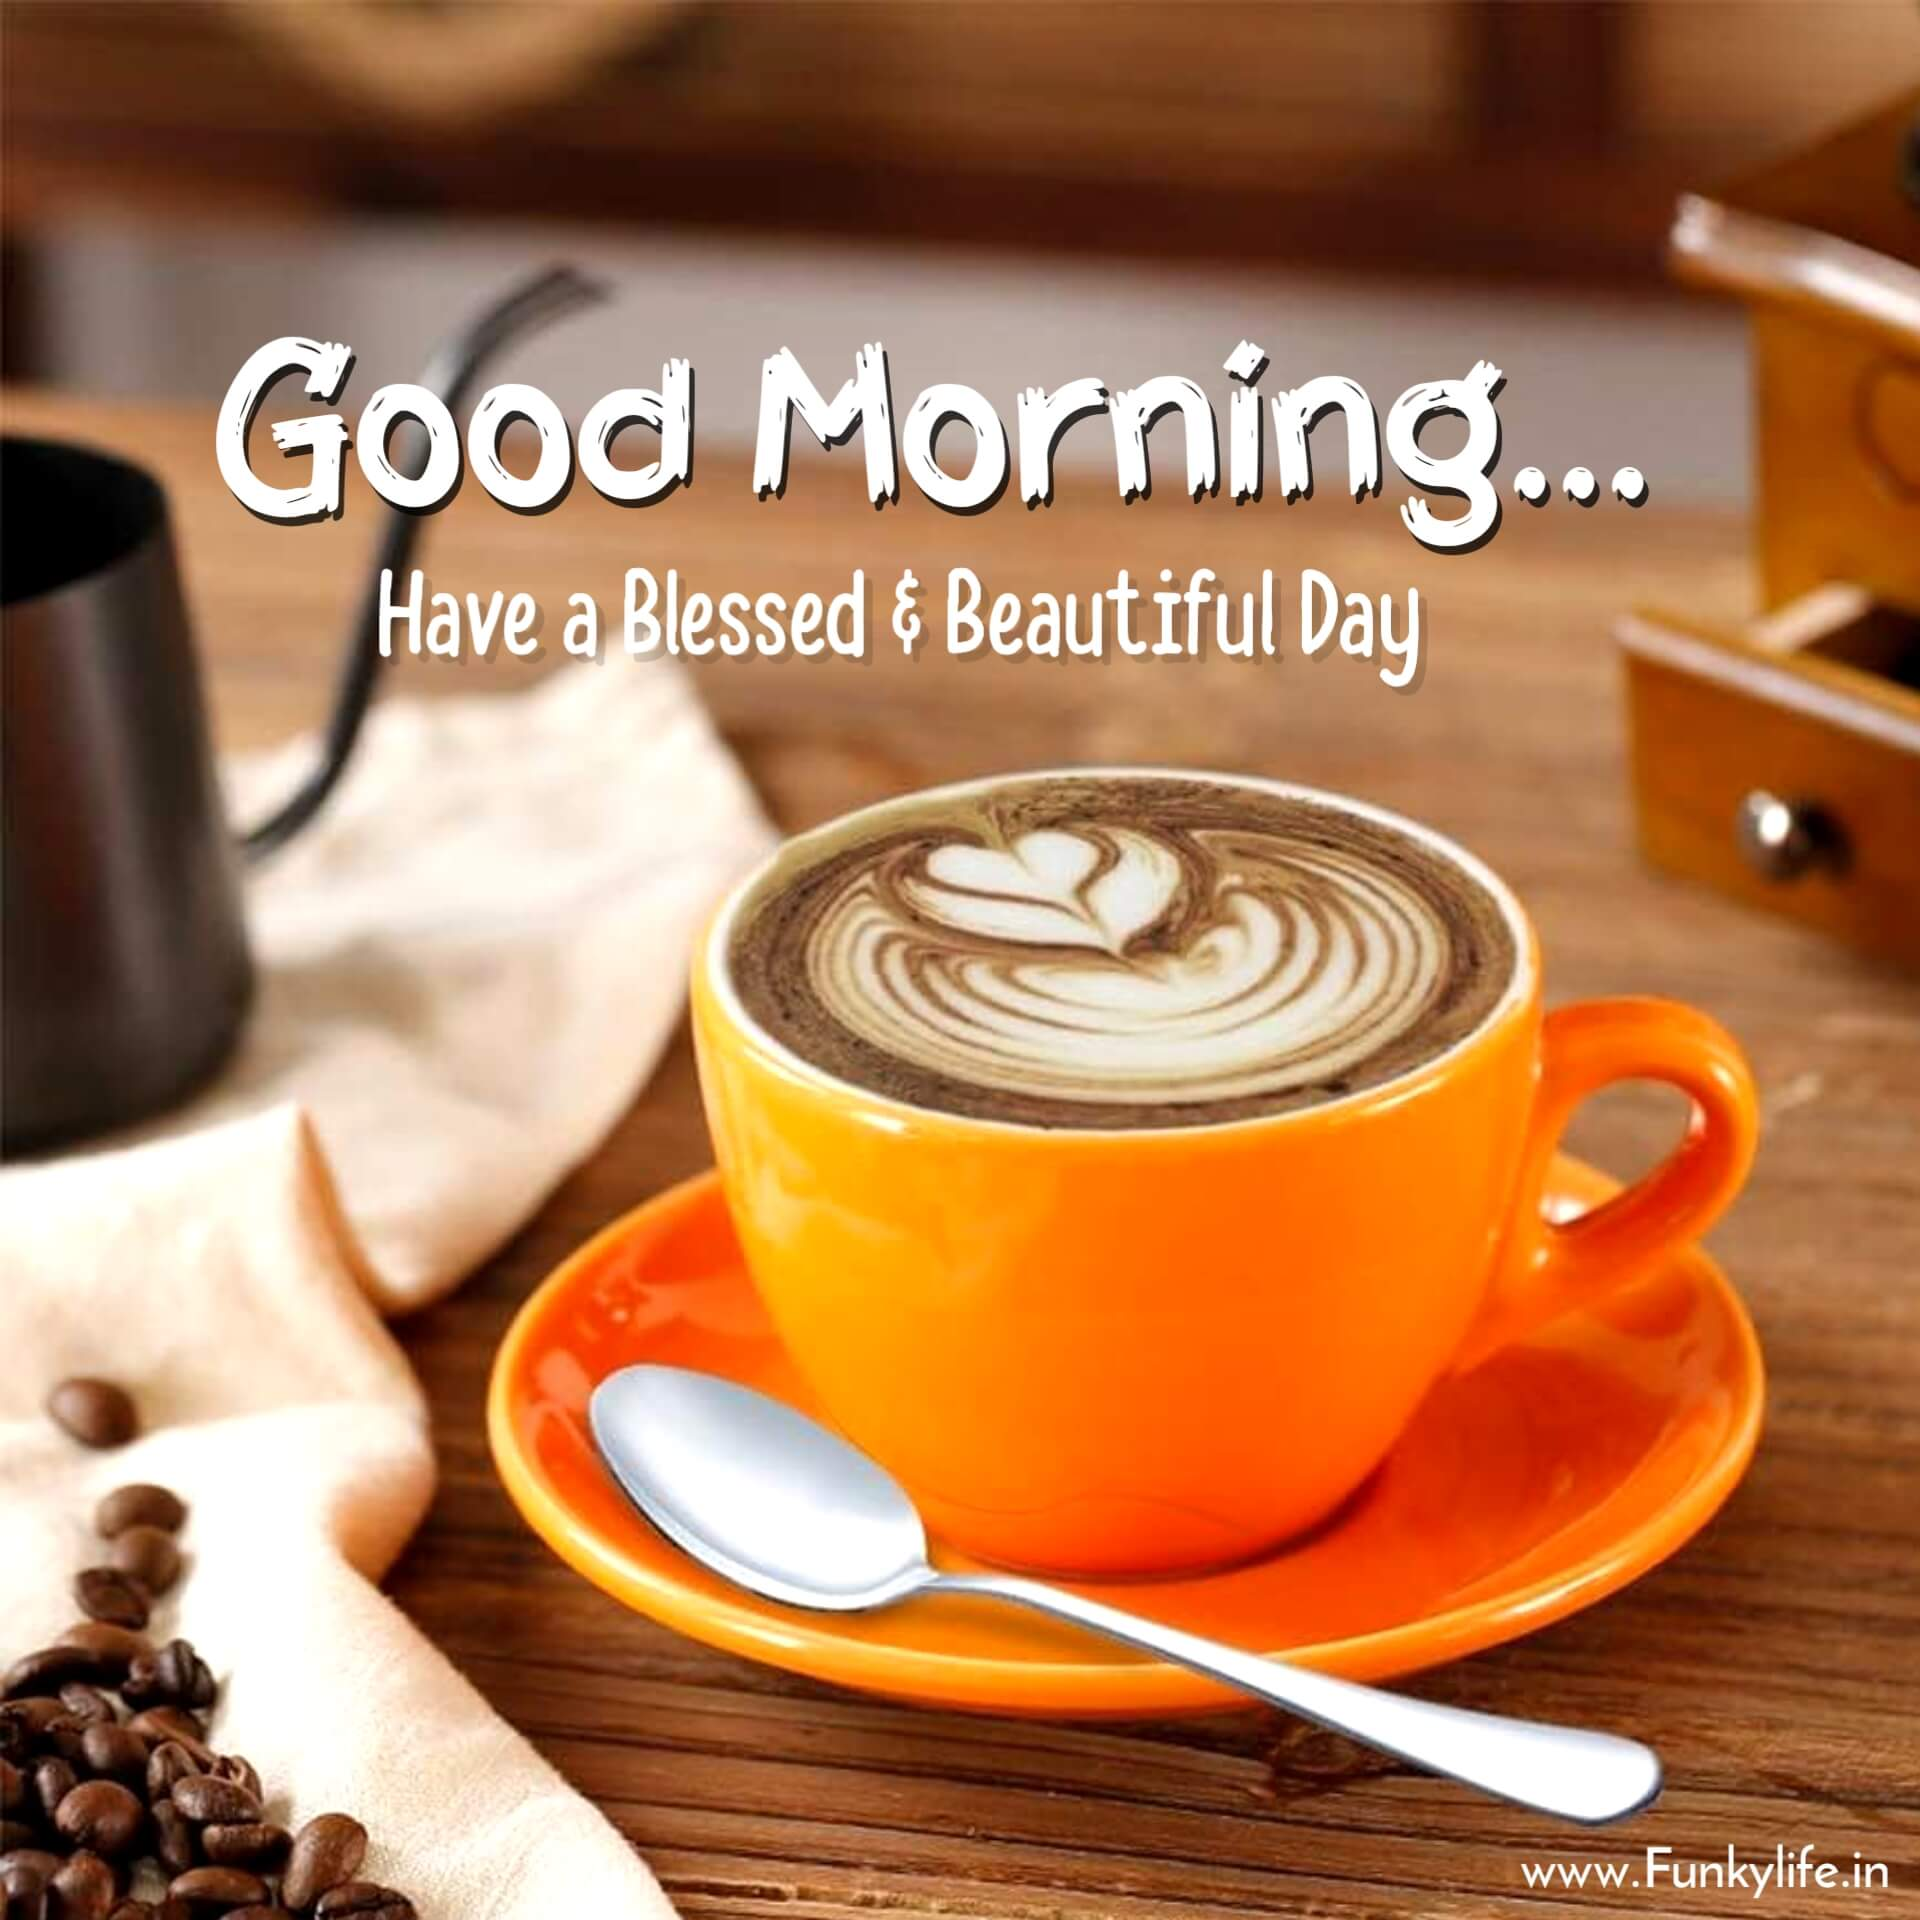 Have a blessed & beautiful day